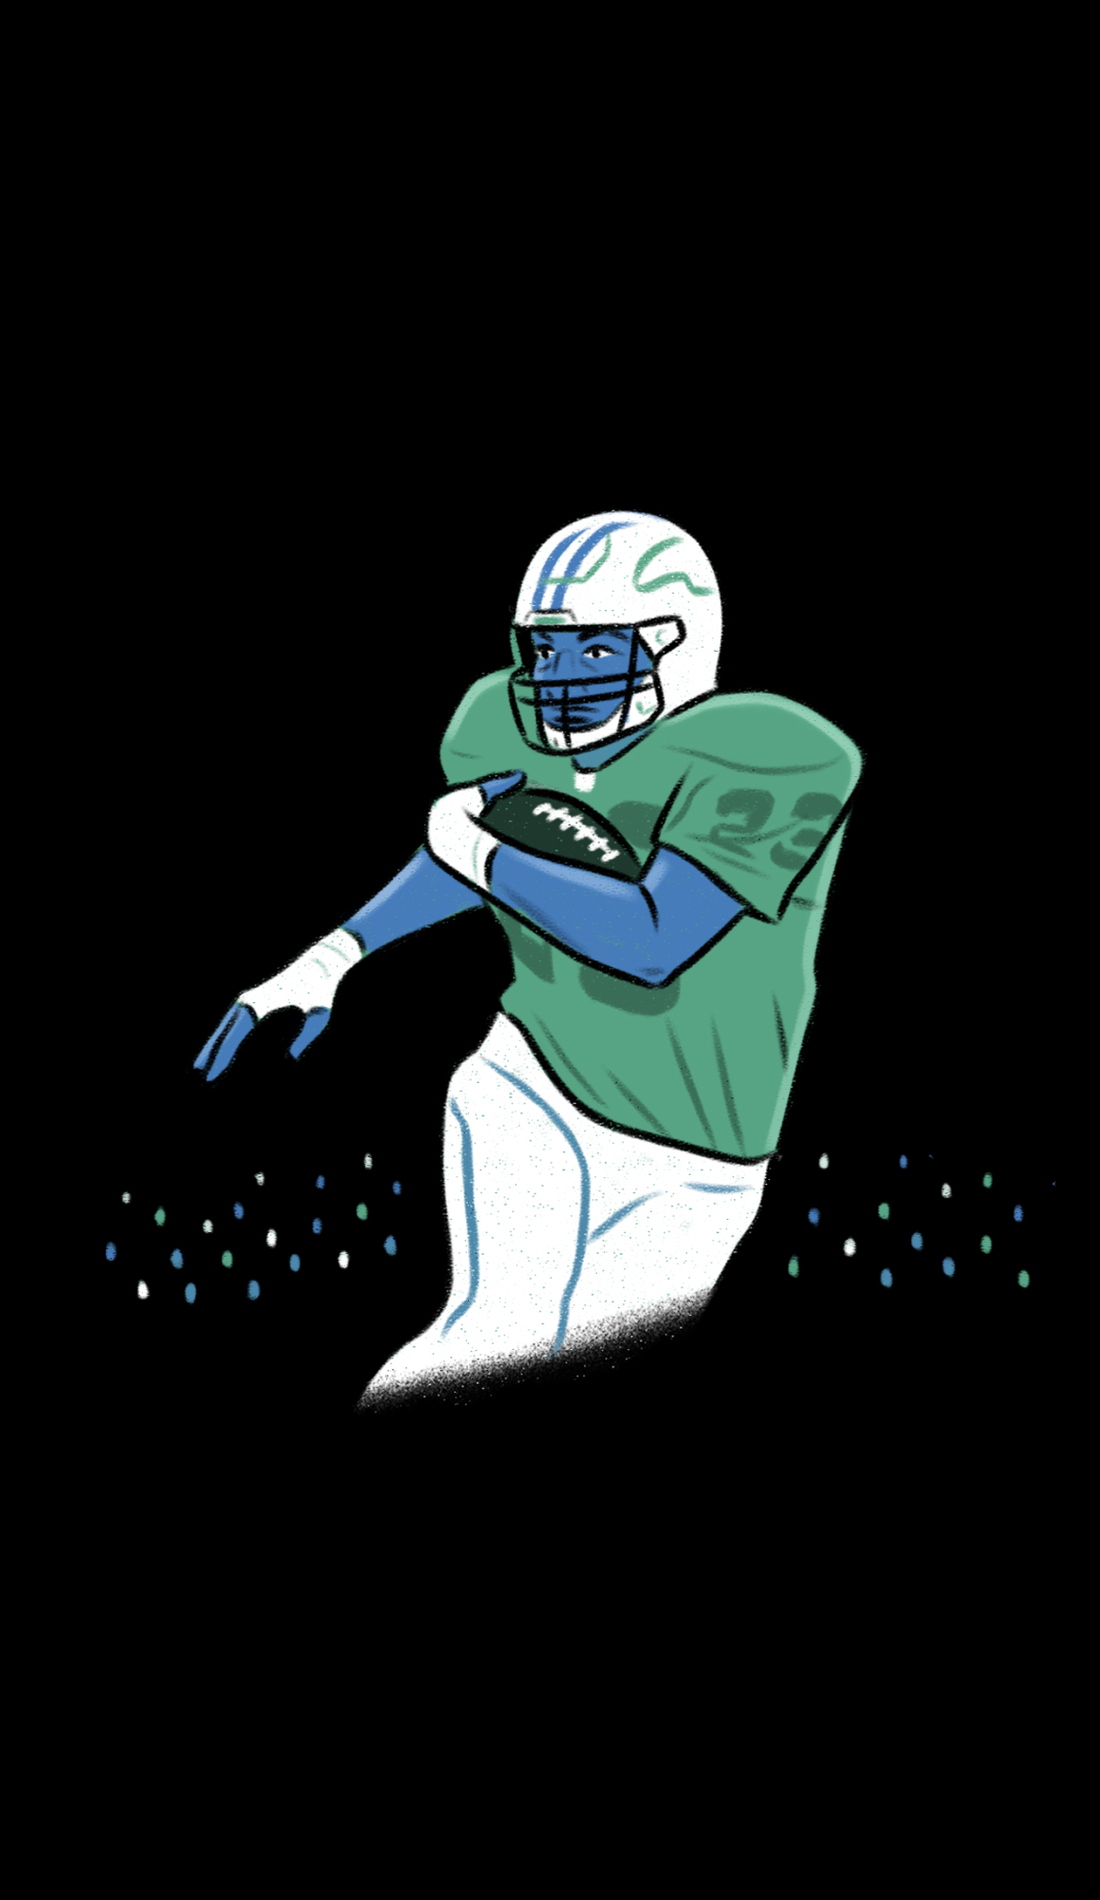 A Rice Owls Football live event